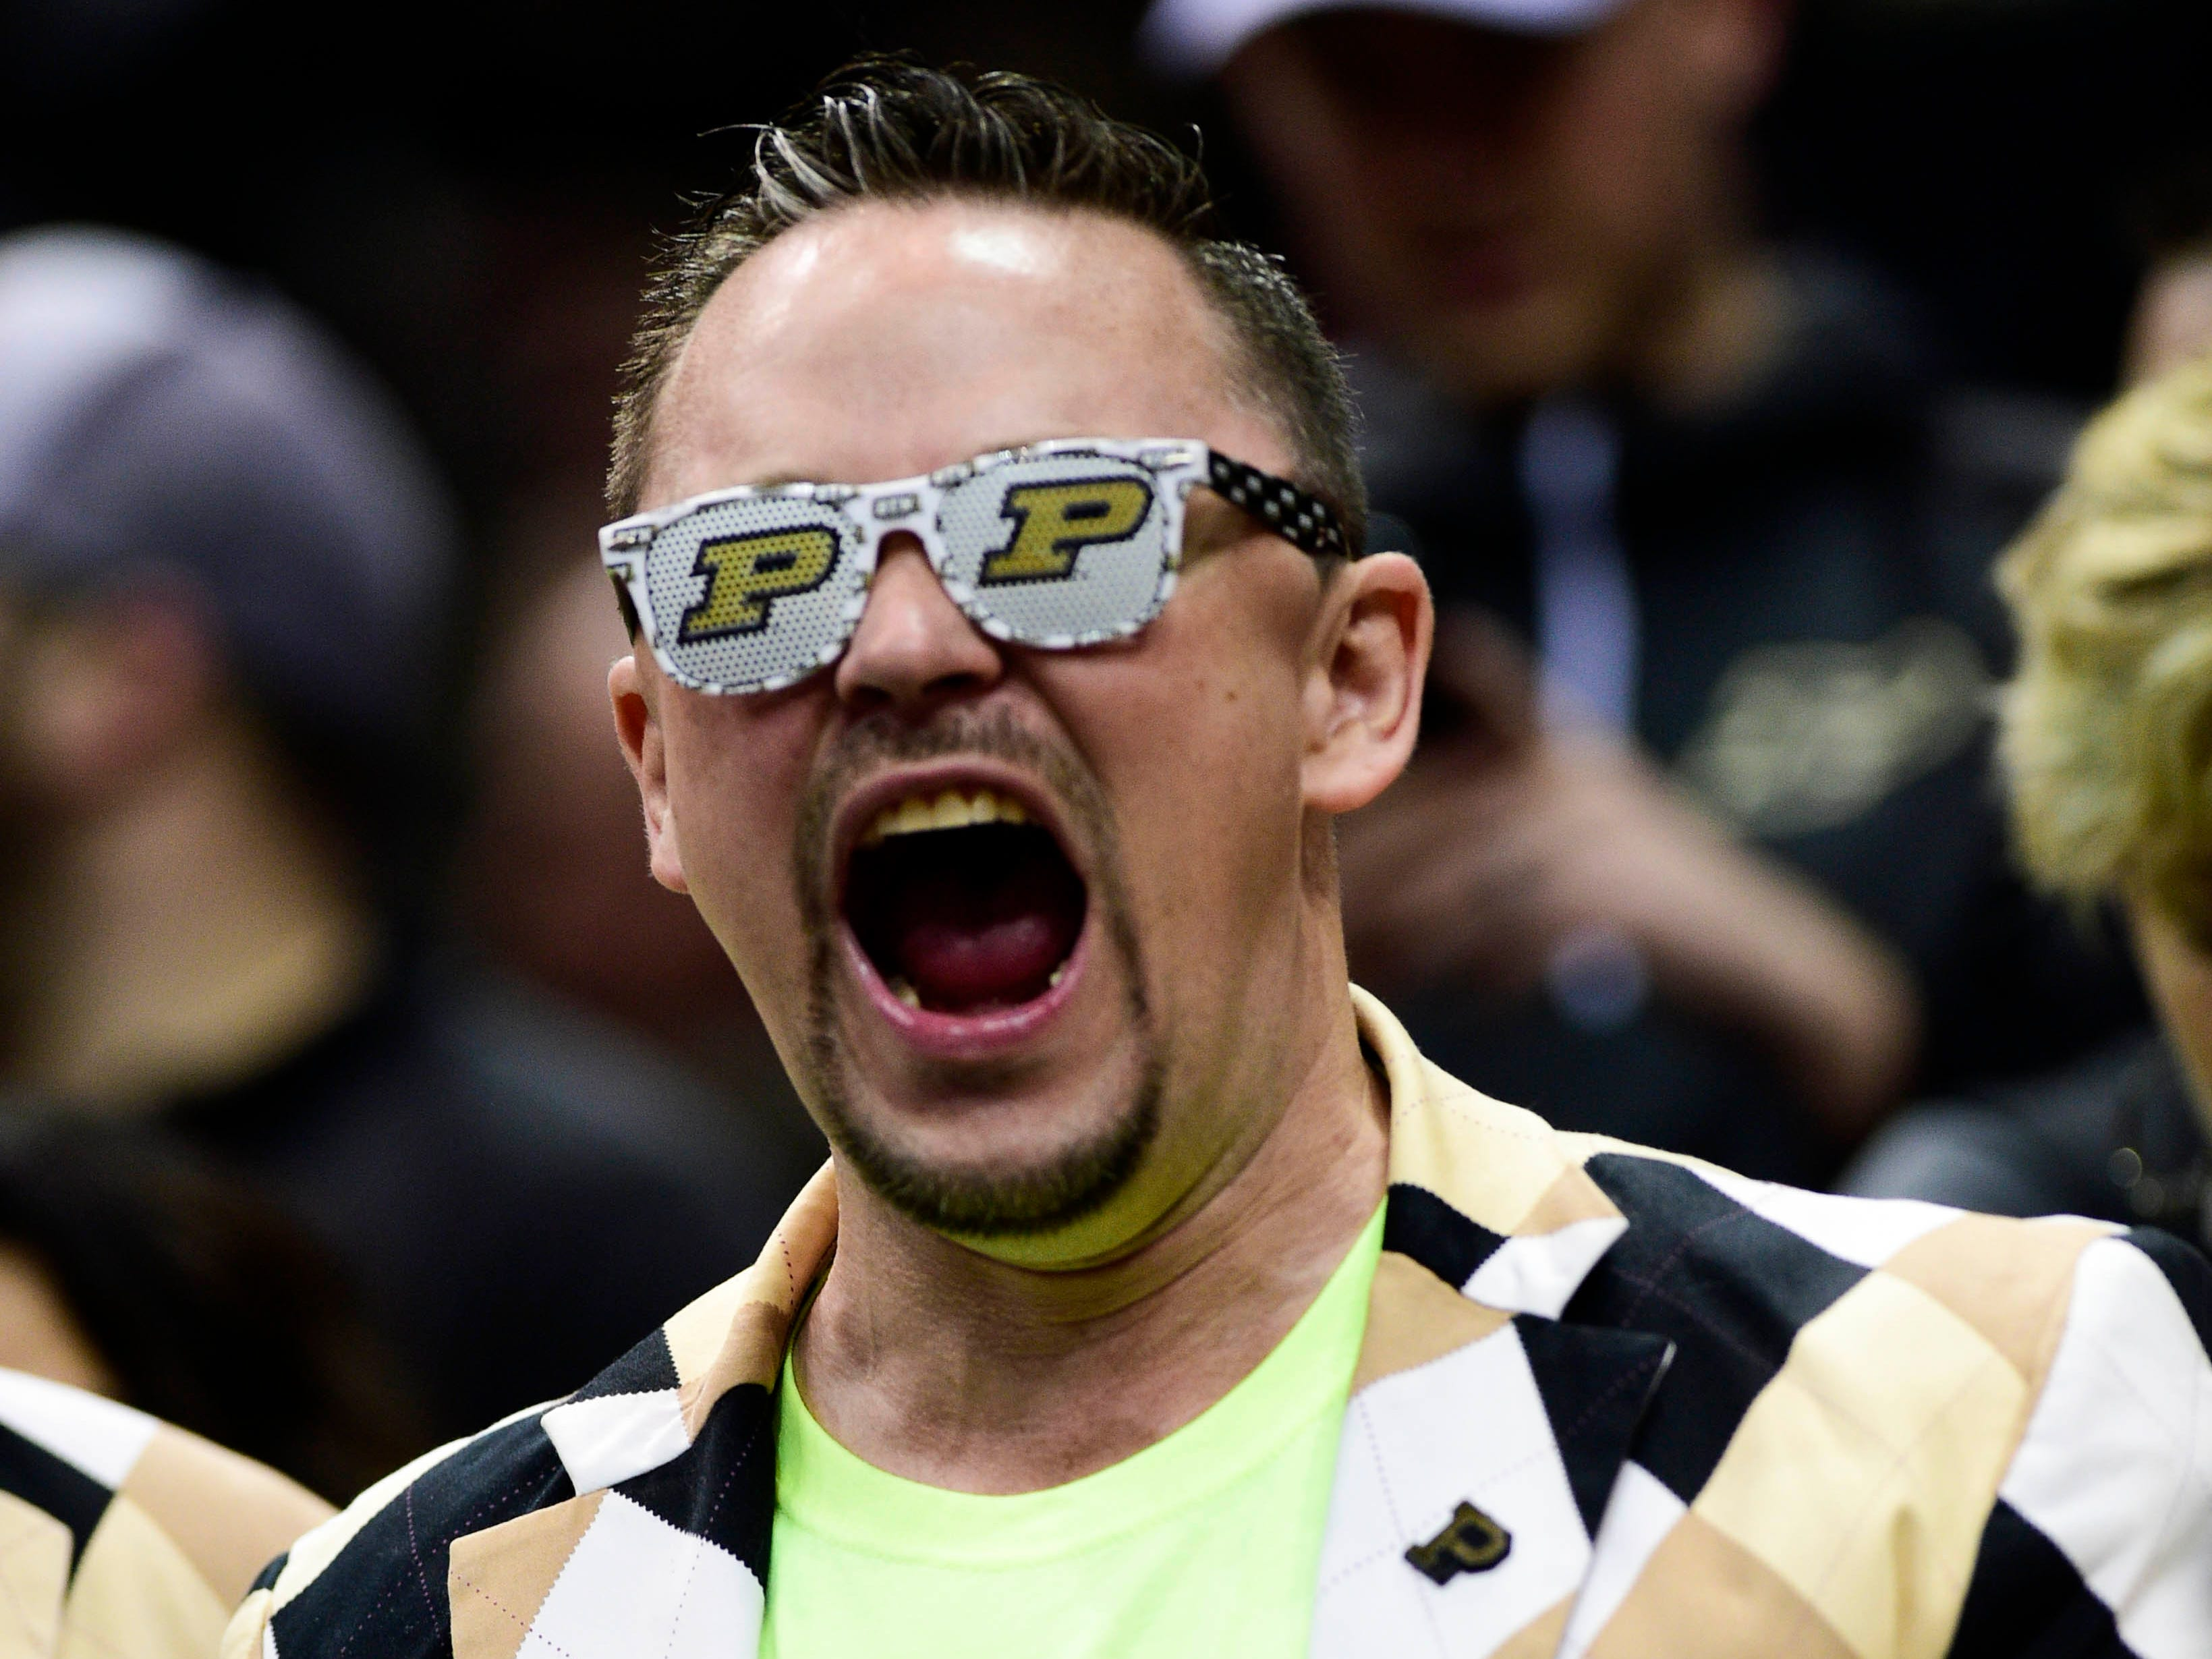 Elite Eight: A Purdue Boilermakers fan cheers before the game against the Virginia Cavaliers.